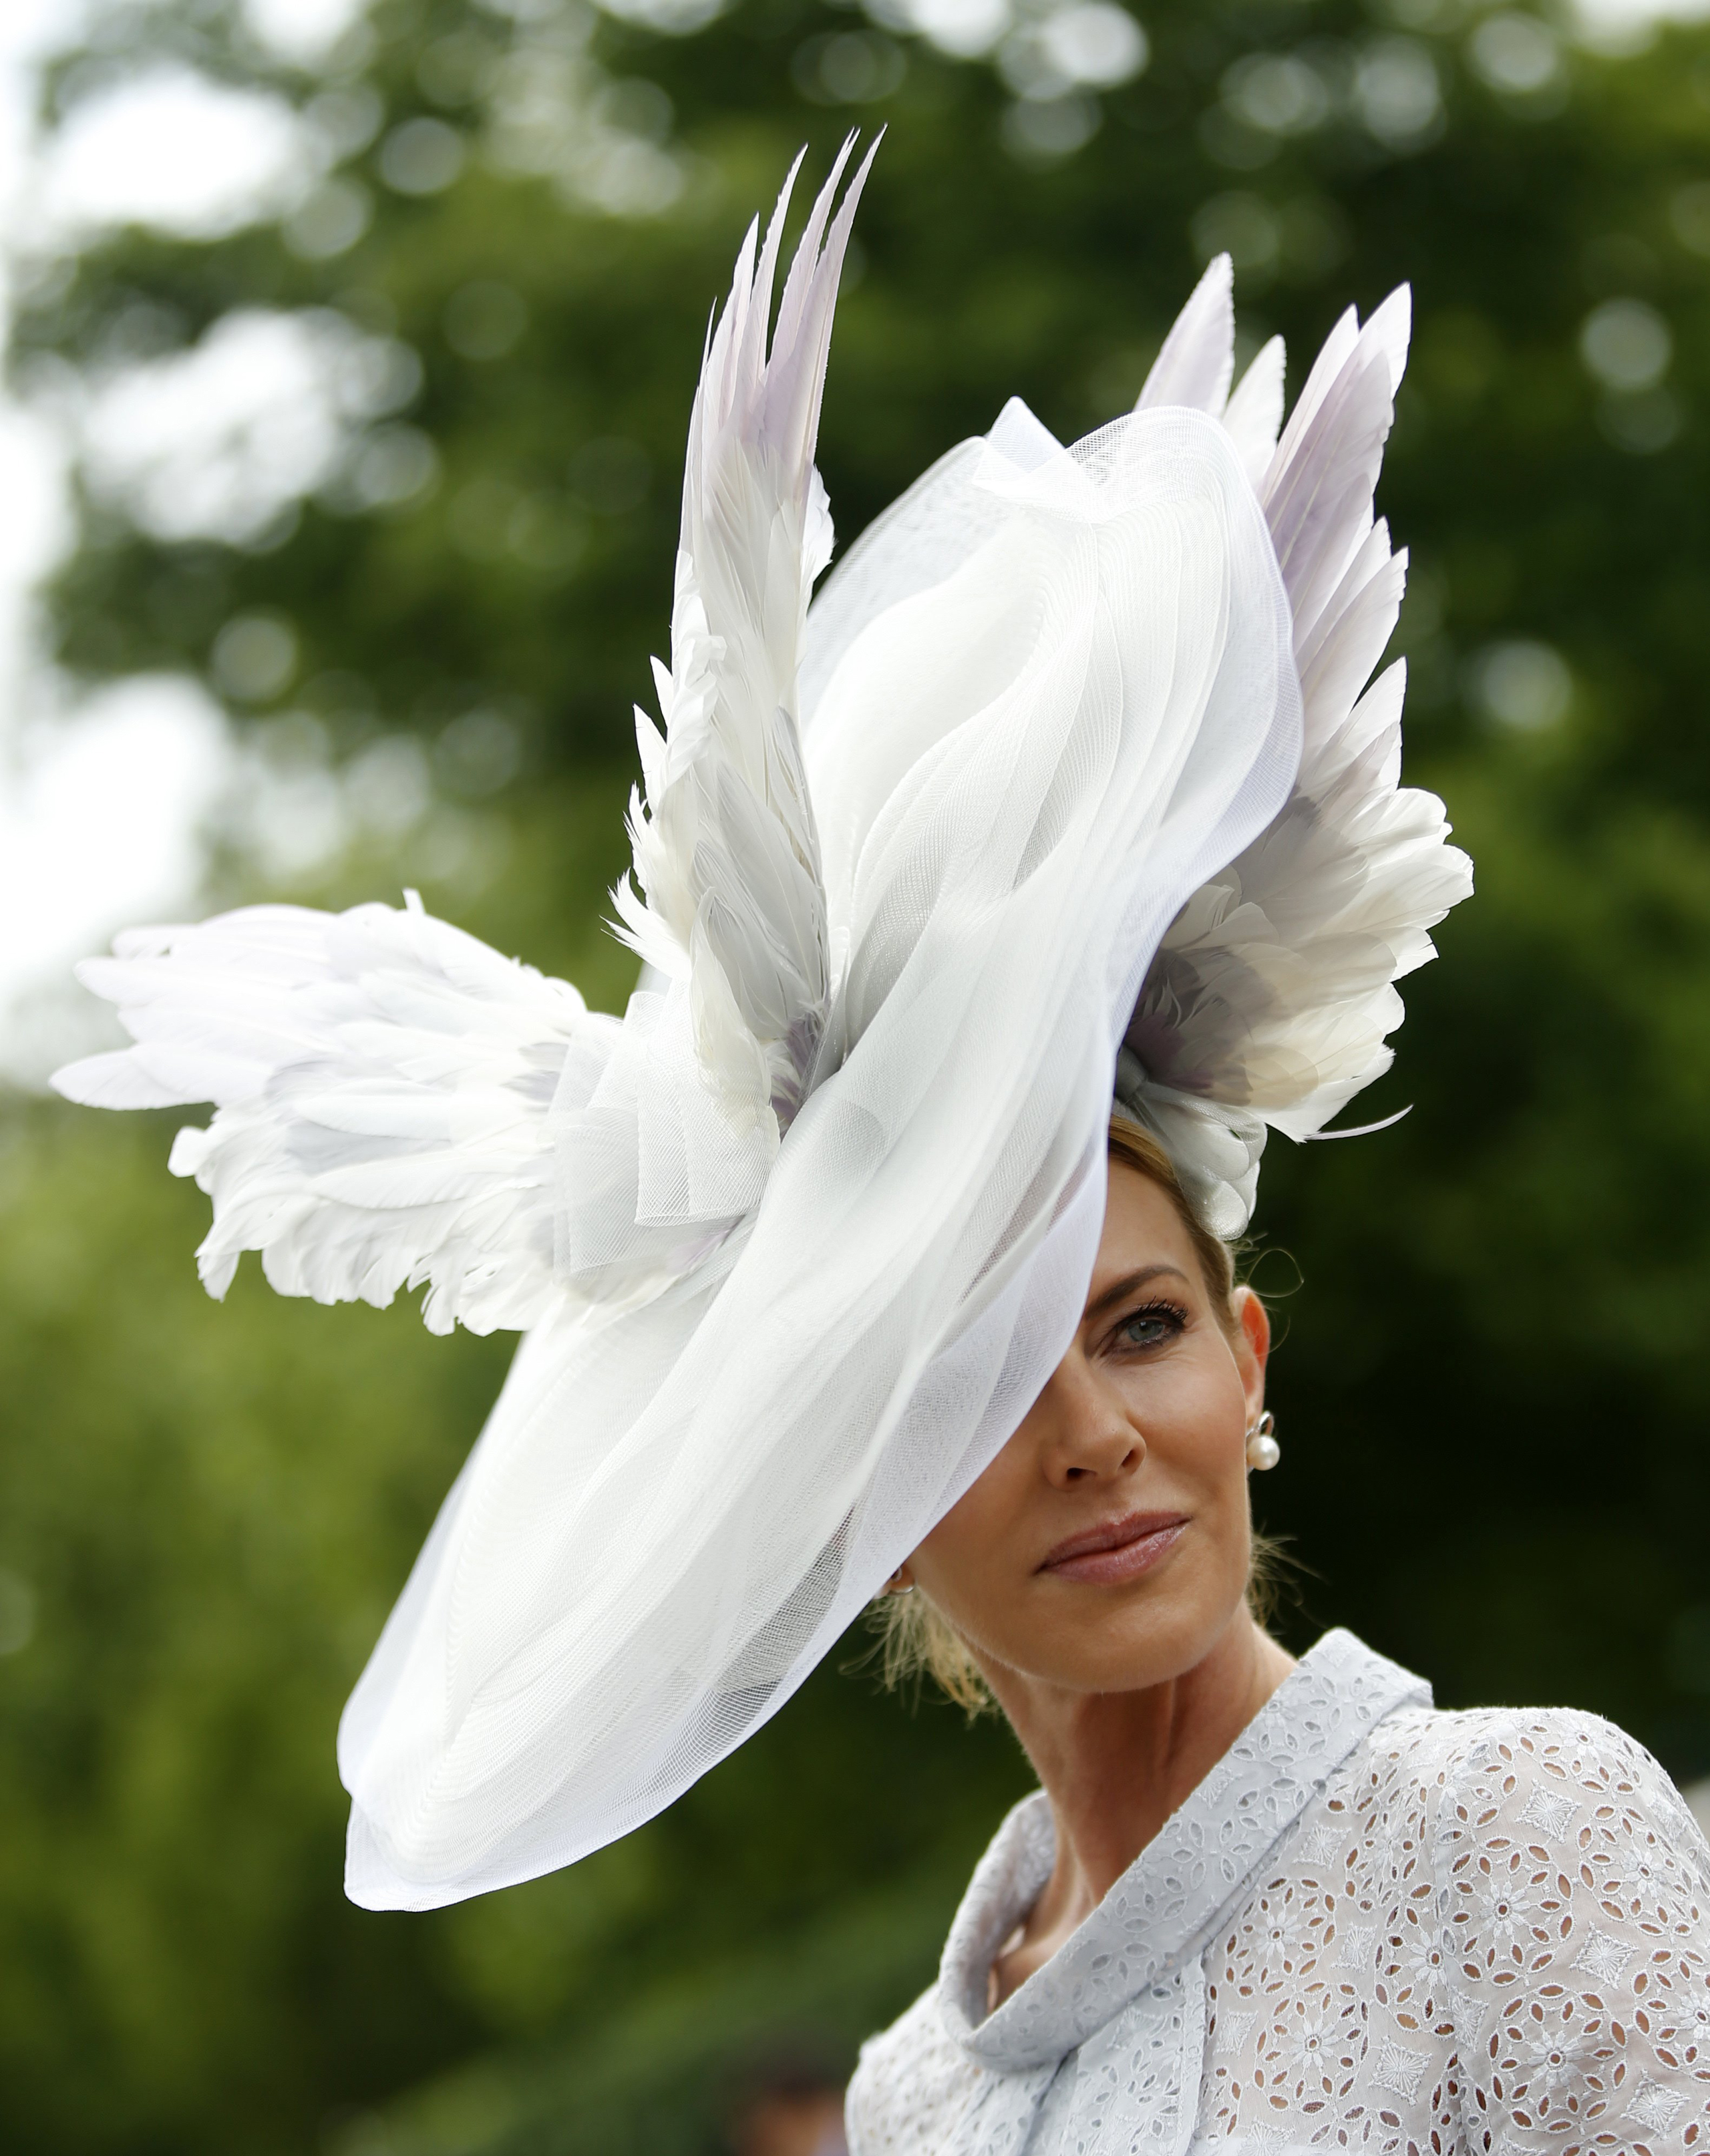 Belinda Studwick poses for photographers as she wears an ornate hat on the first day of the Royal Ascot horse race meeting in Ascot, U.K., on June 14, 2016.